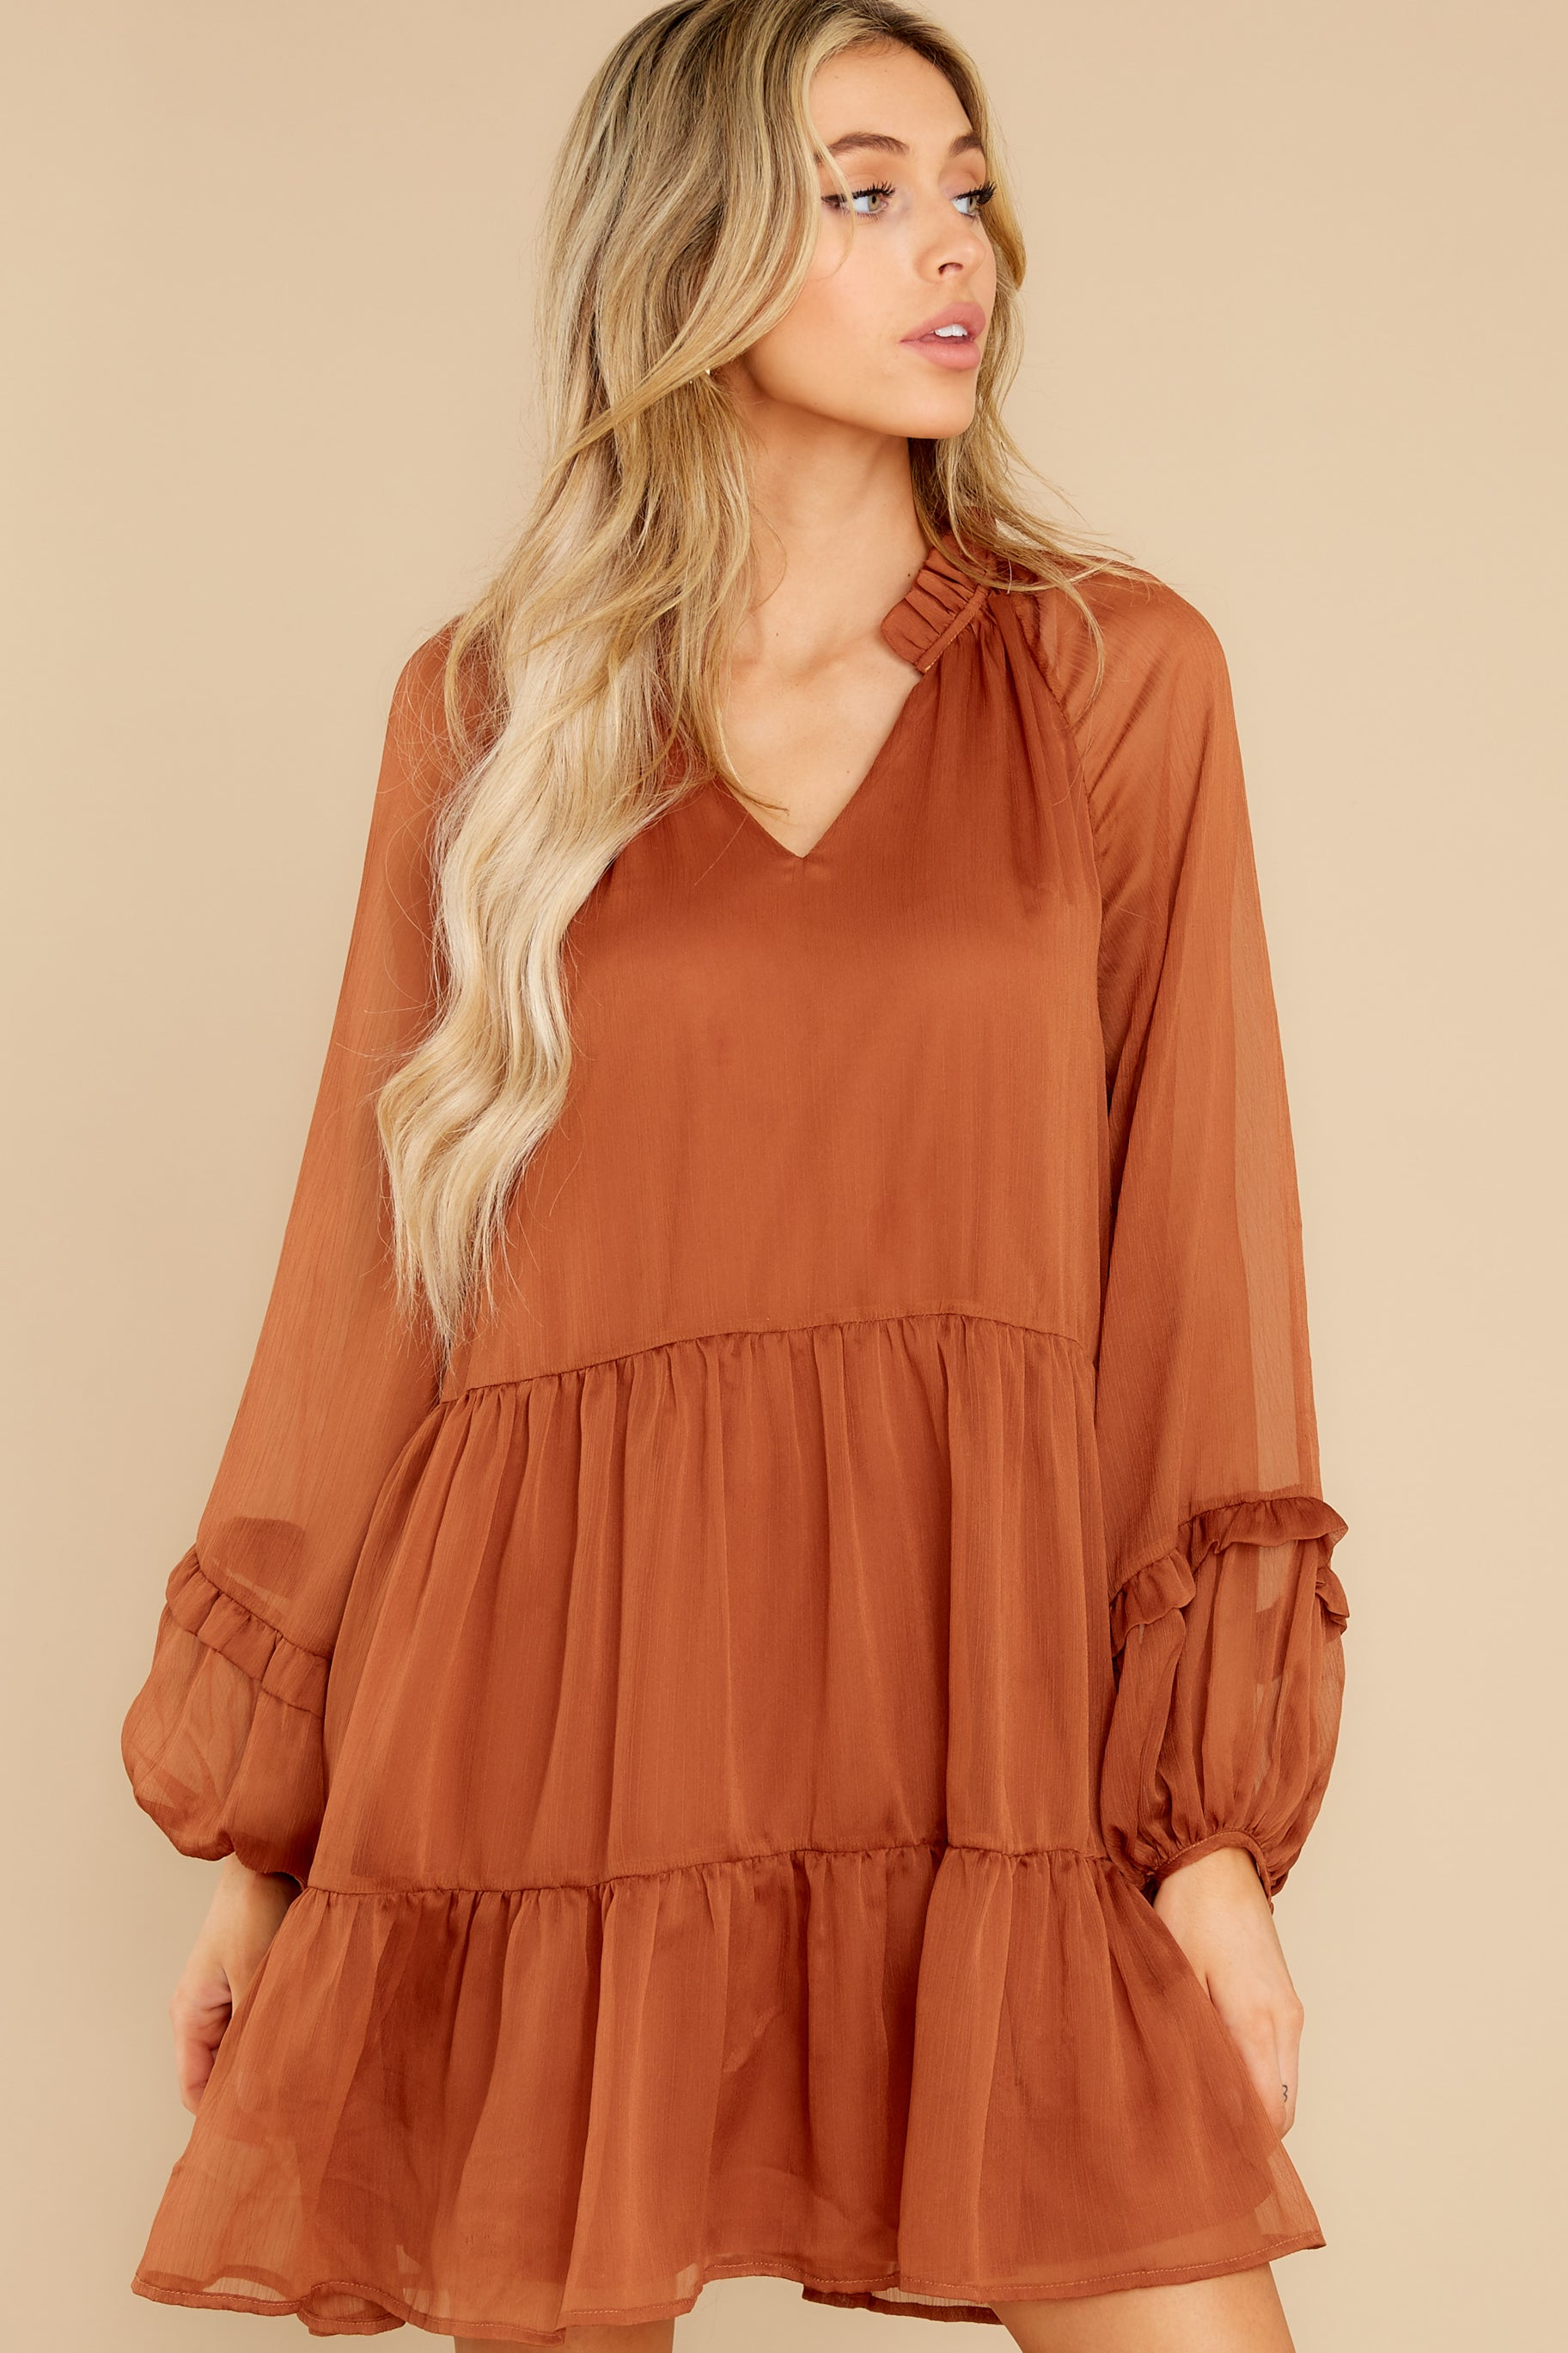 5 Dare To Remember Golden Brown Dress at reddress.com